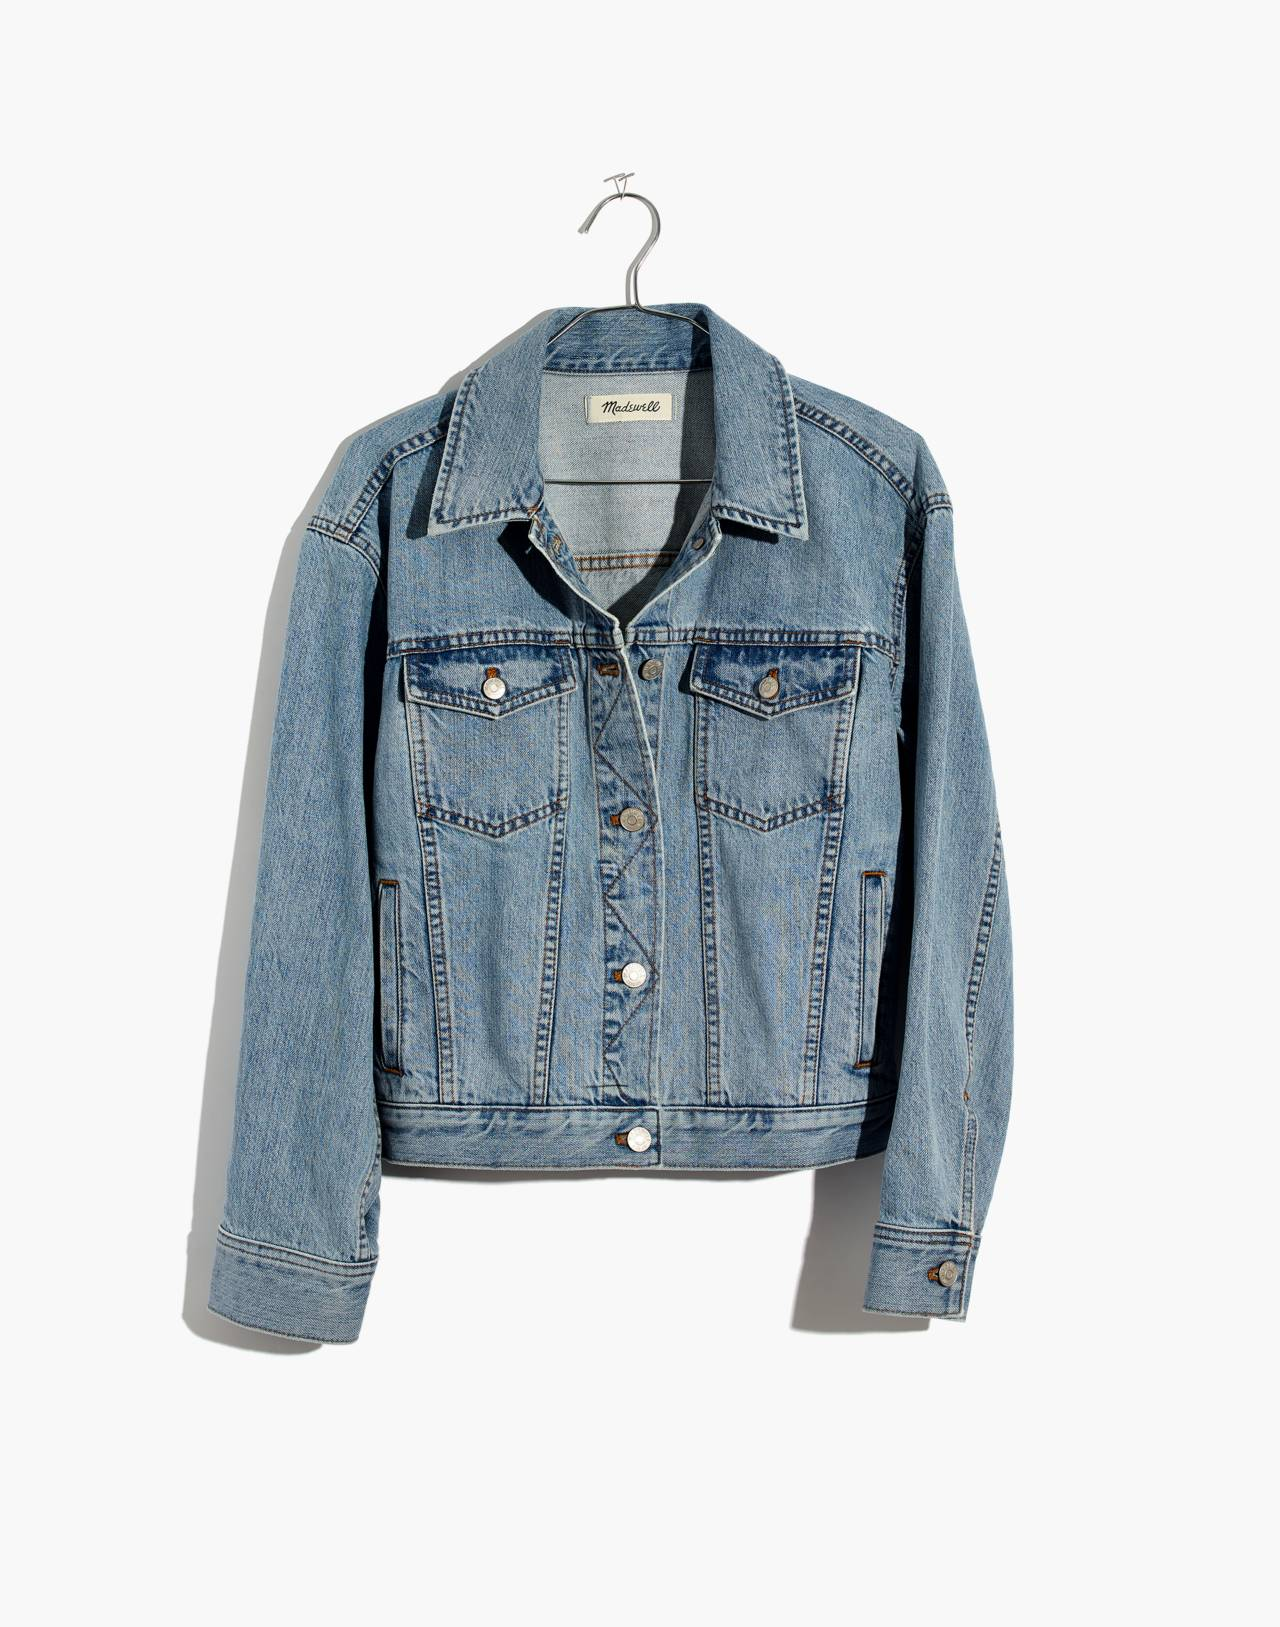 The Boxy-Crop Jean Jacket in Fitzgerald Wash in fitzgerald wash image 4